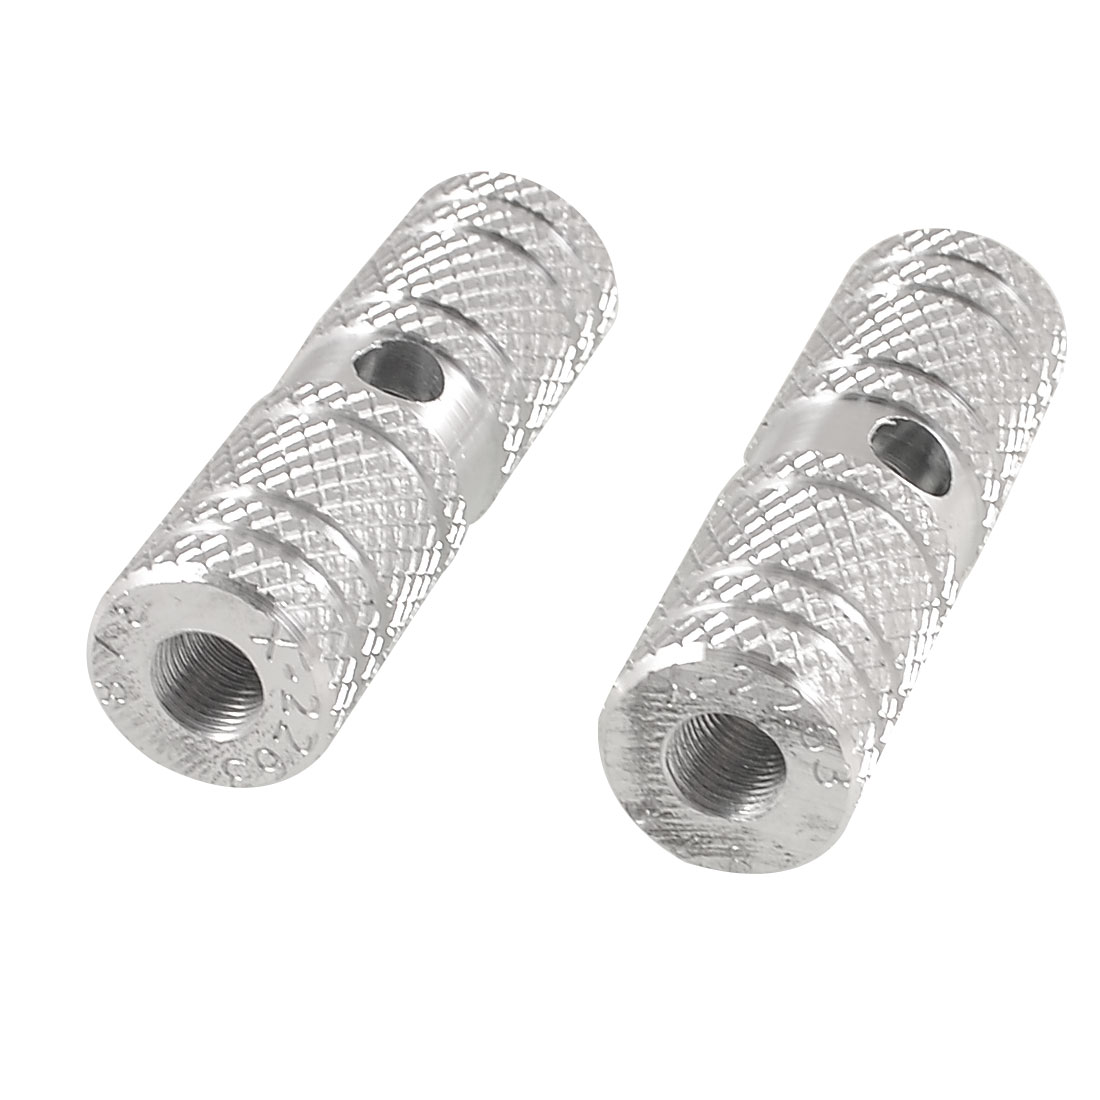 2 Pcs Aluminum Antislip Groove Design Bicycle Bike Axle Foot Pegs Silver Tone